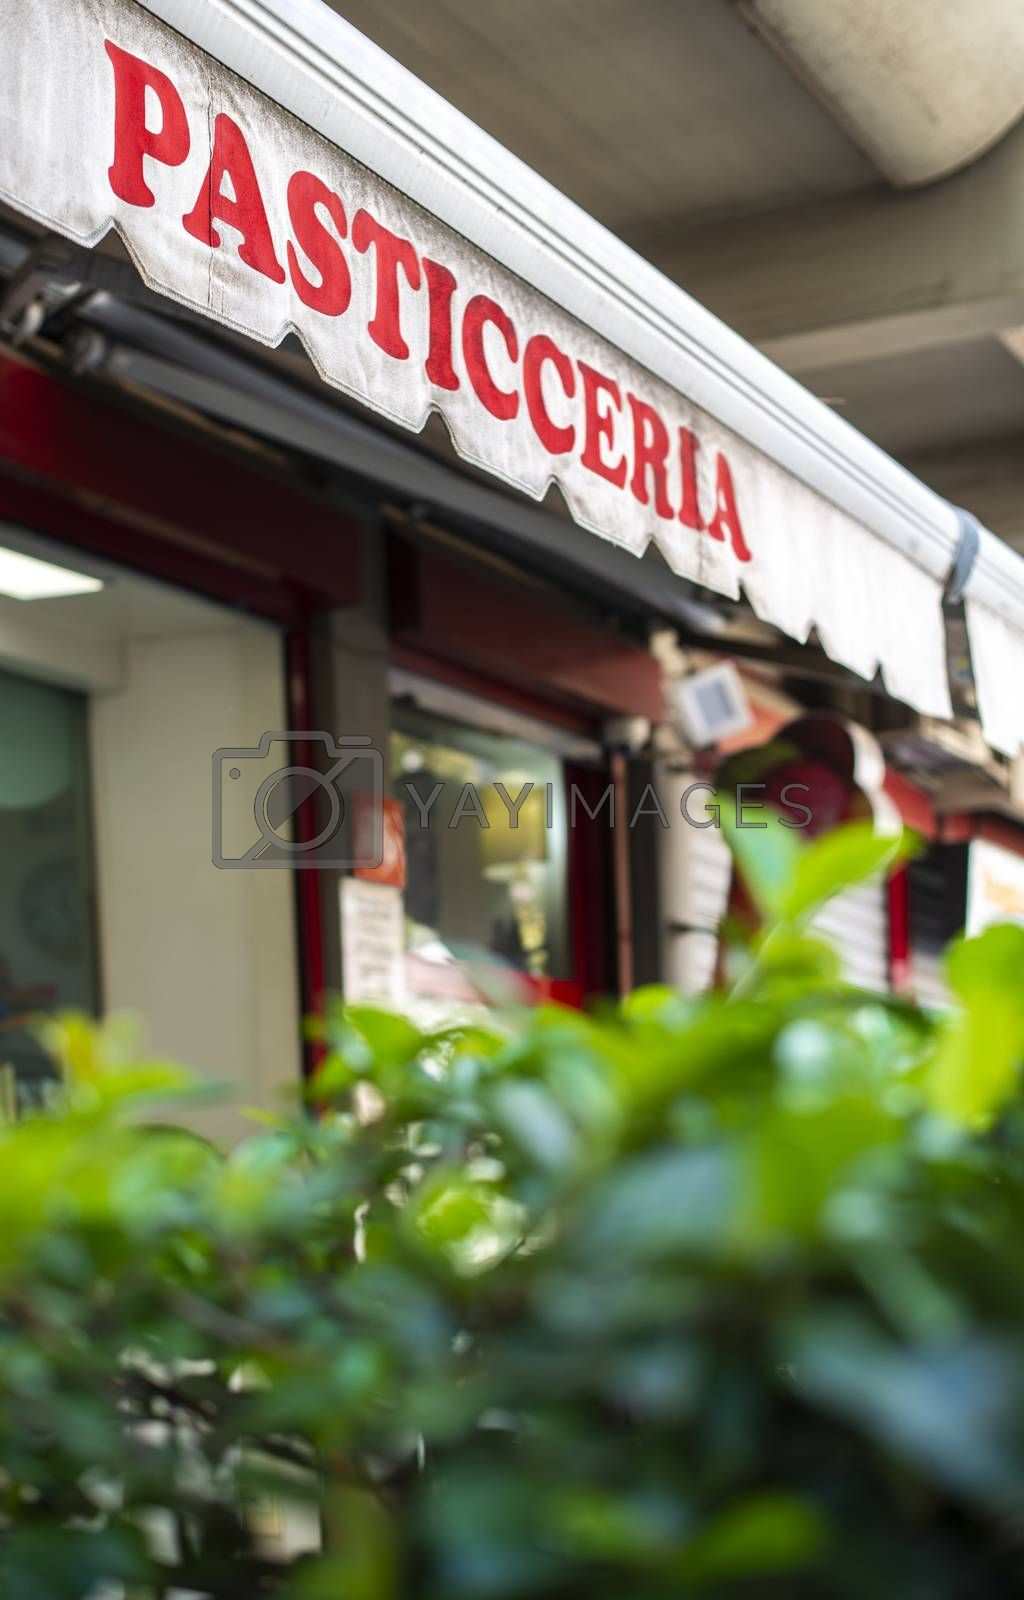 Text pasticceria on sunblind. Italian pastry shop. Facade on pastry shop.  Green foliage in front of cafe and sweets shop.